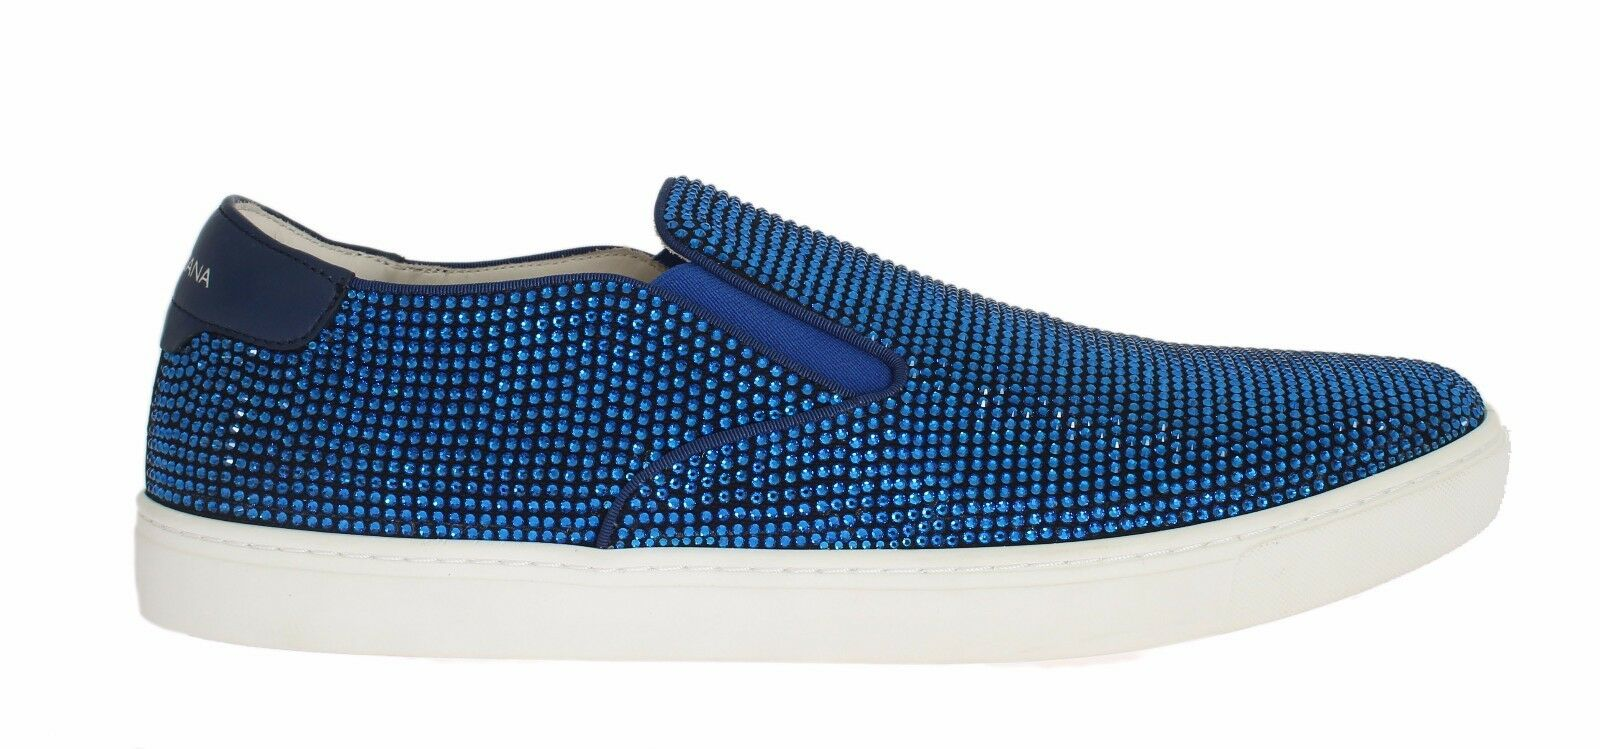 NEW $2300 DOLCE & GABBANA Shoes Blue Strass Canvas Logo Sneakers s. EU44 / US11